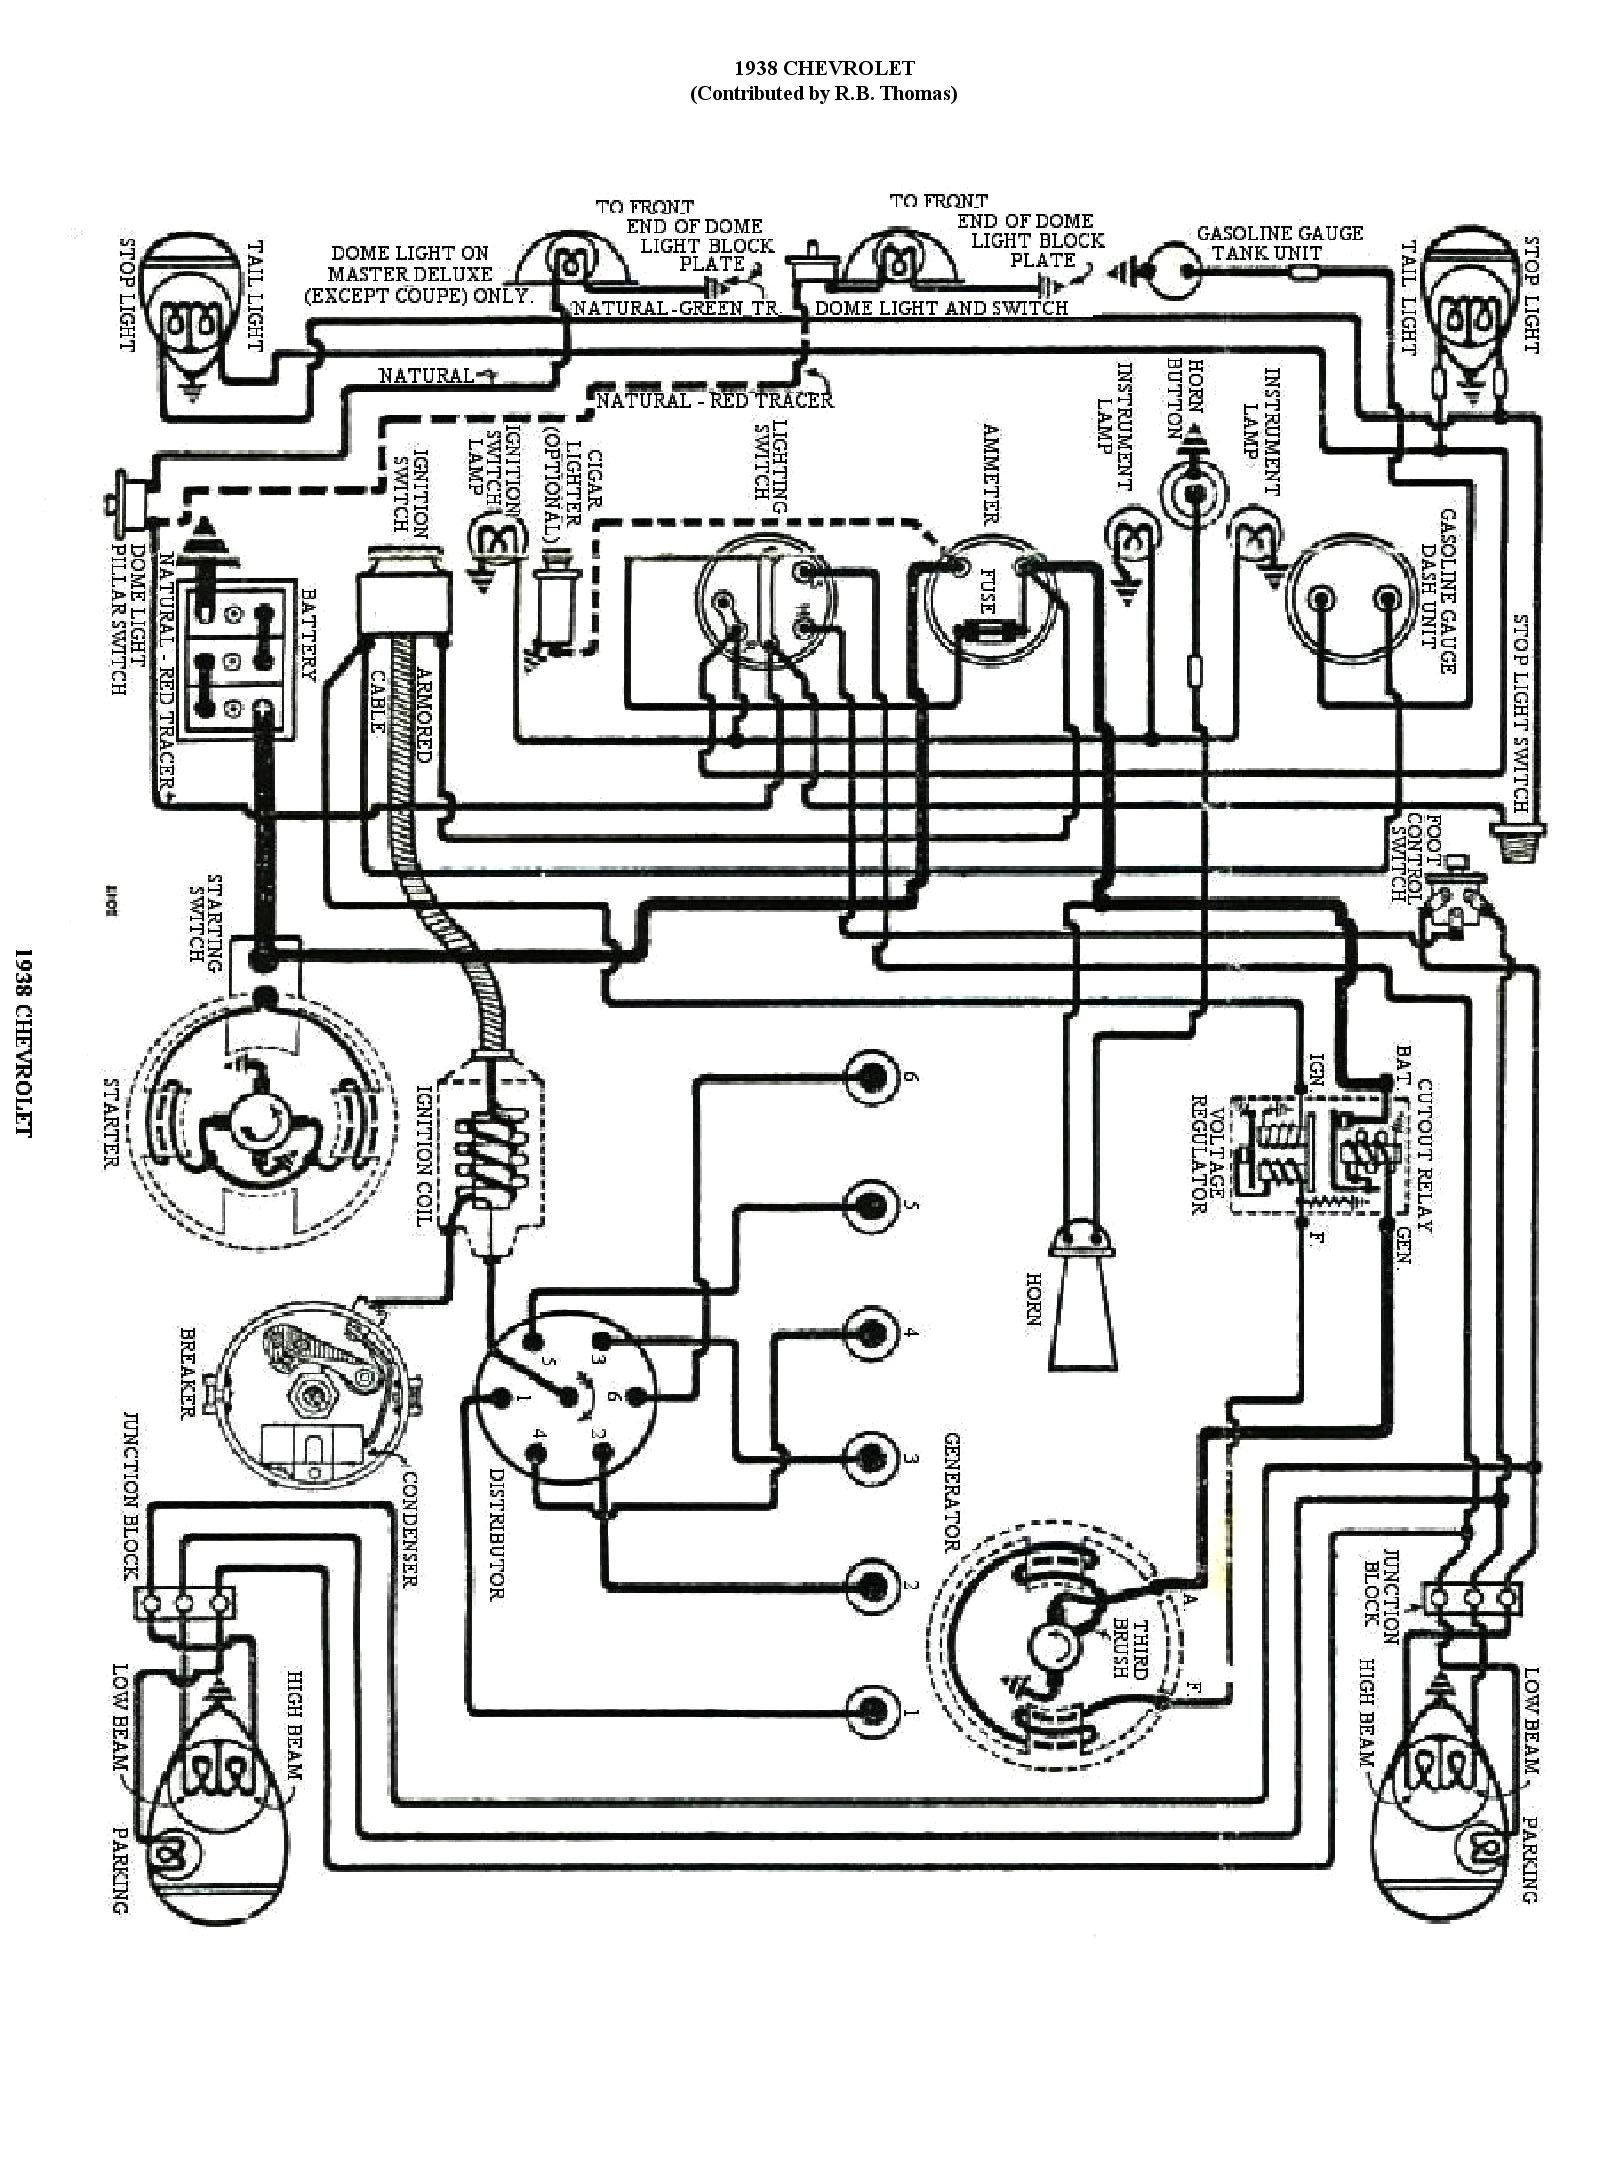 1958 Chevy Bel Air Wiring Diagram Will Be A Thing 1956 Diagrams Rh Oldcarmanualproject Com 1954 1960